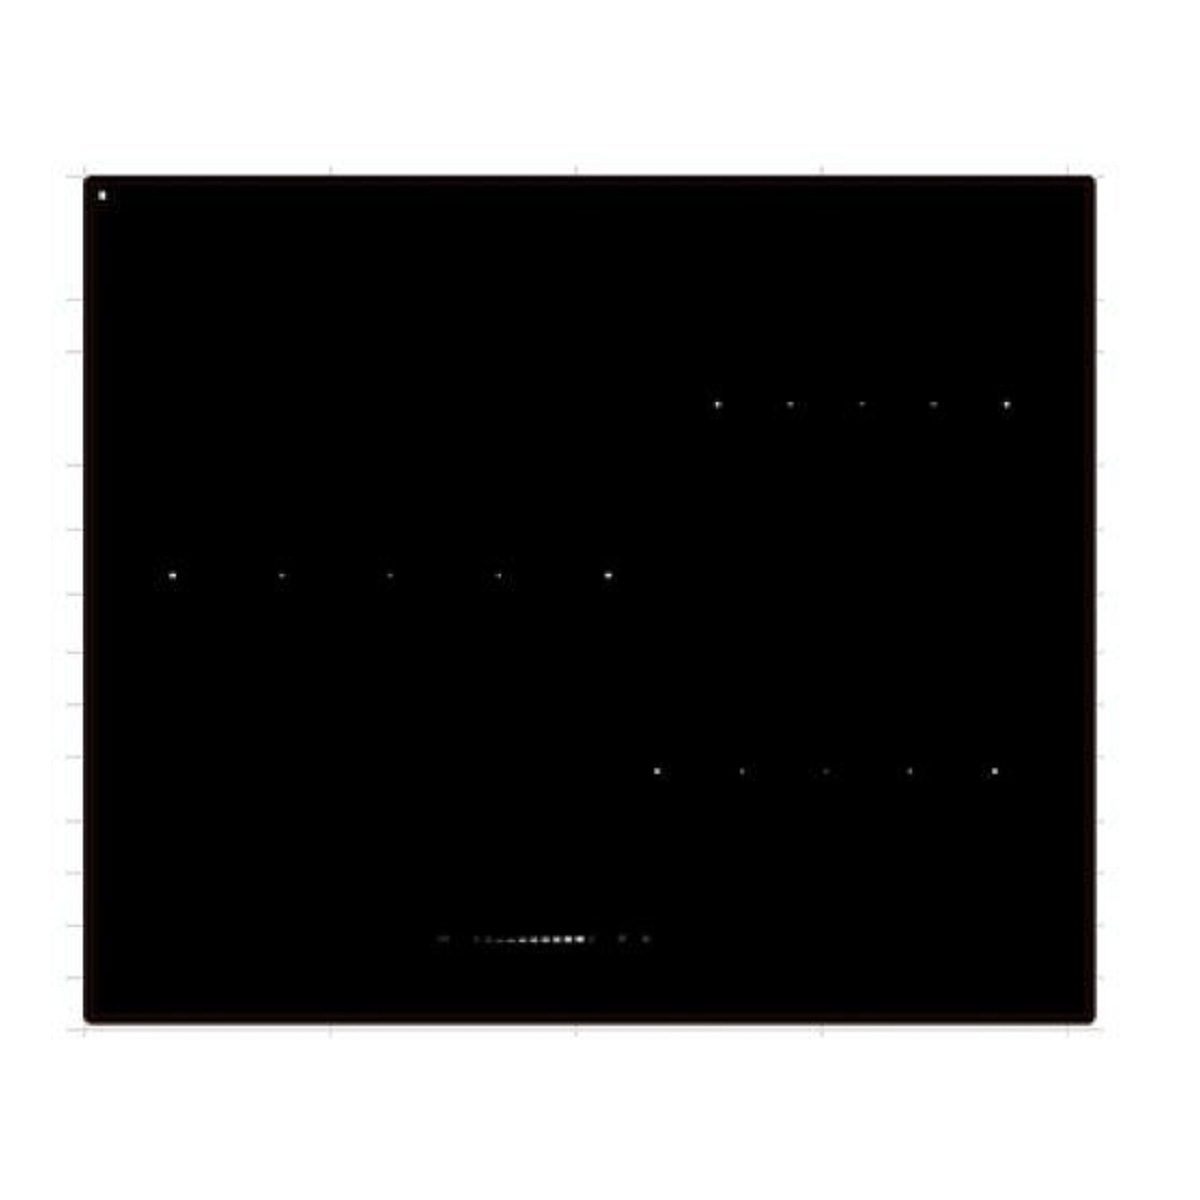 Smeg Electric Cooktop SIHP463S